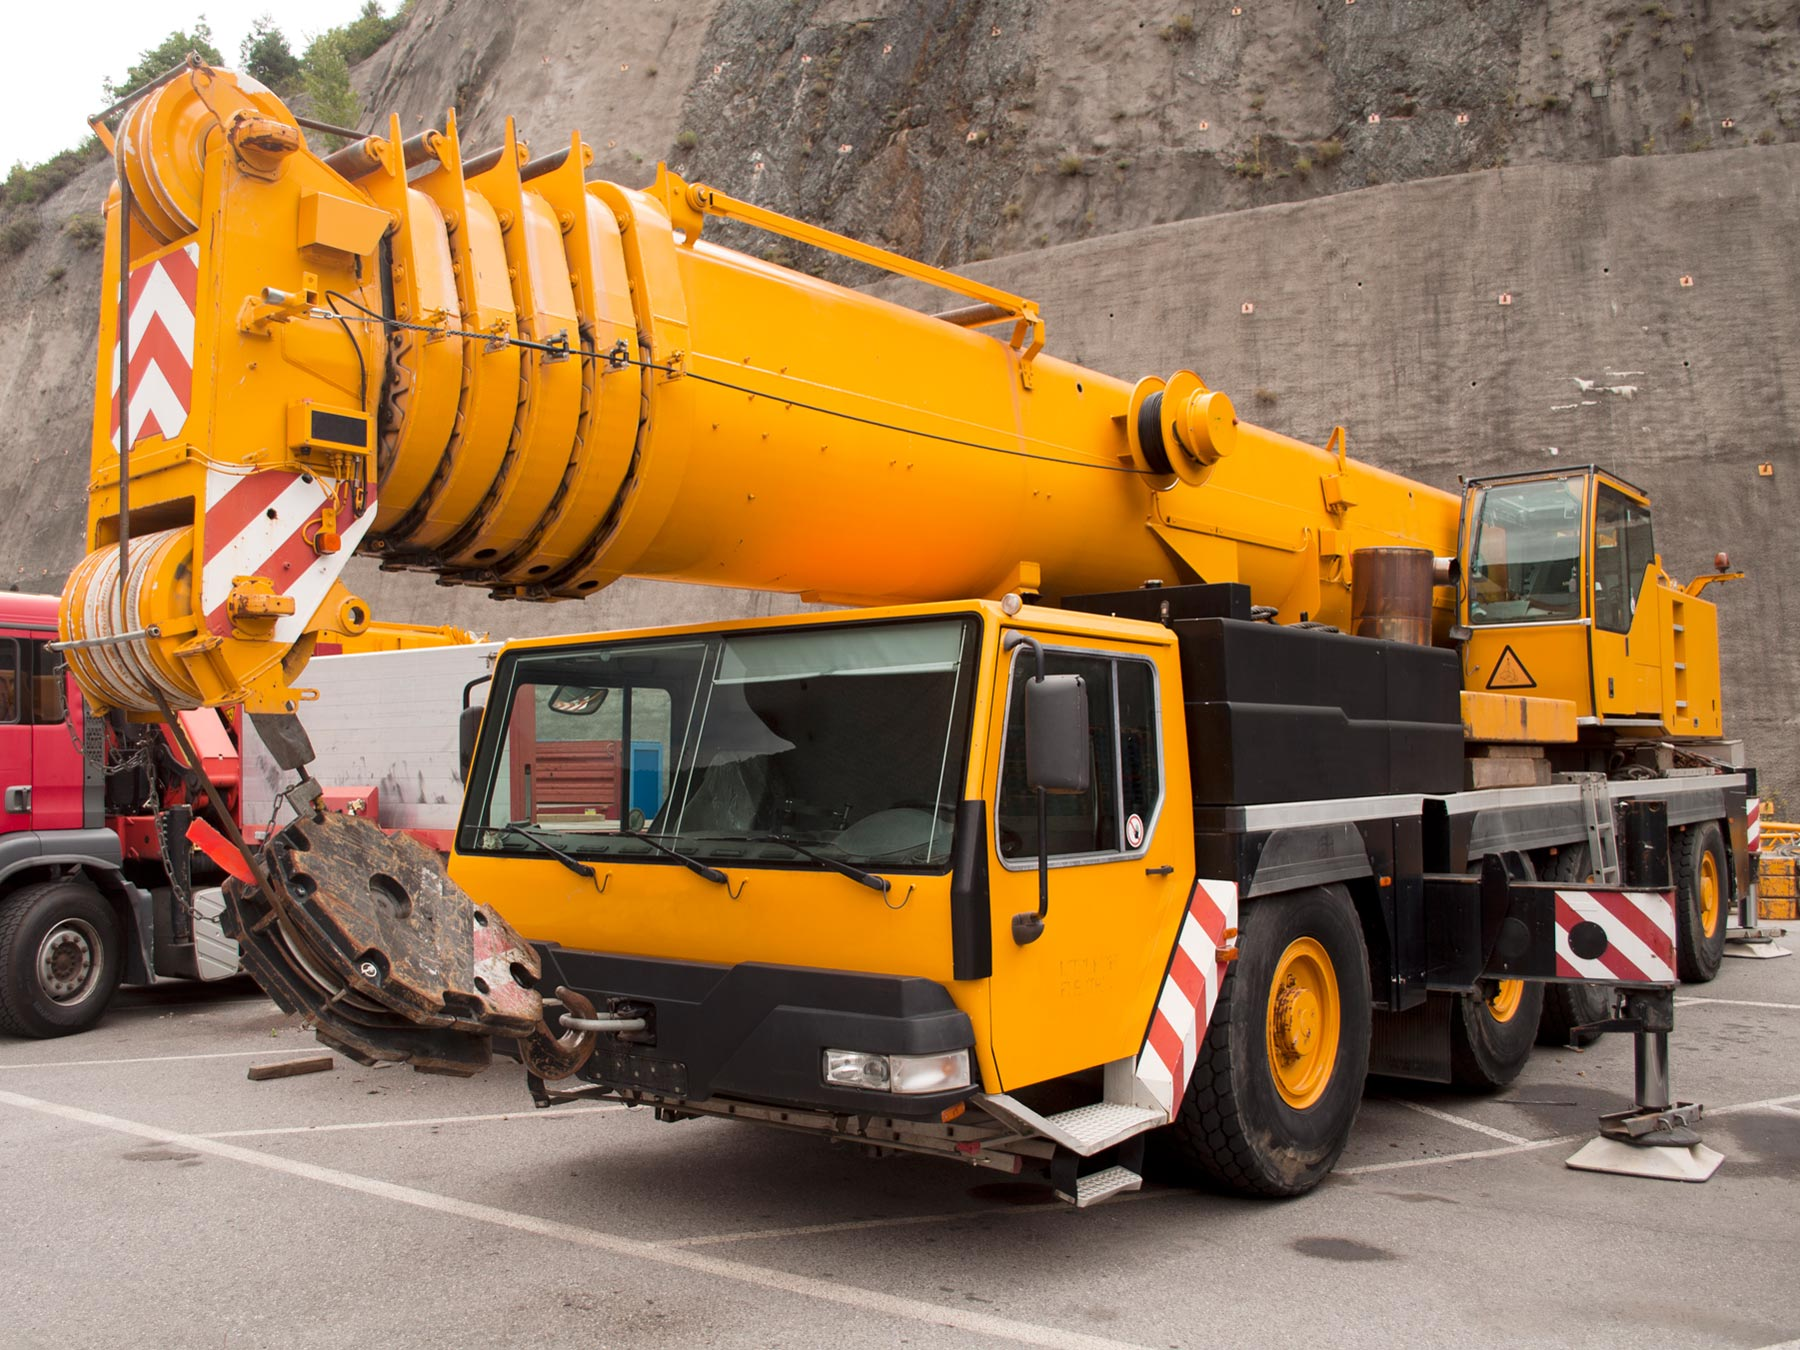 How Much It Costs To Rent a Crane